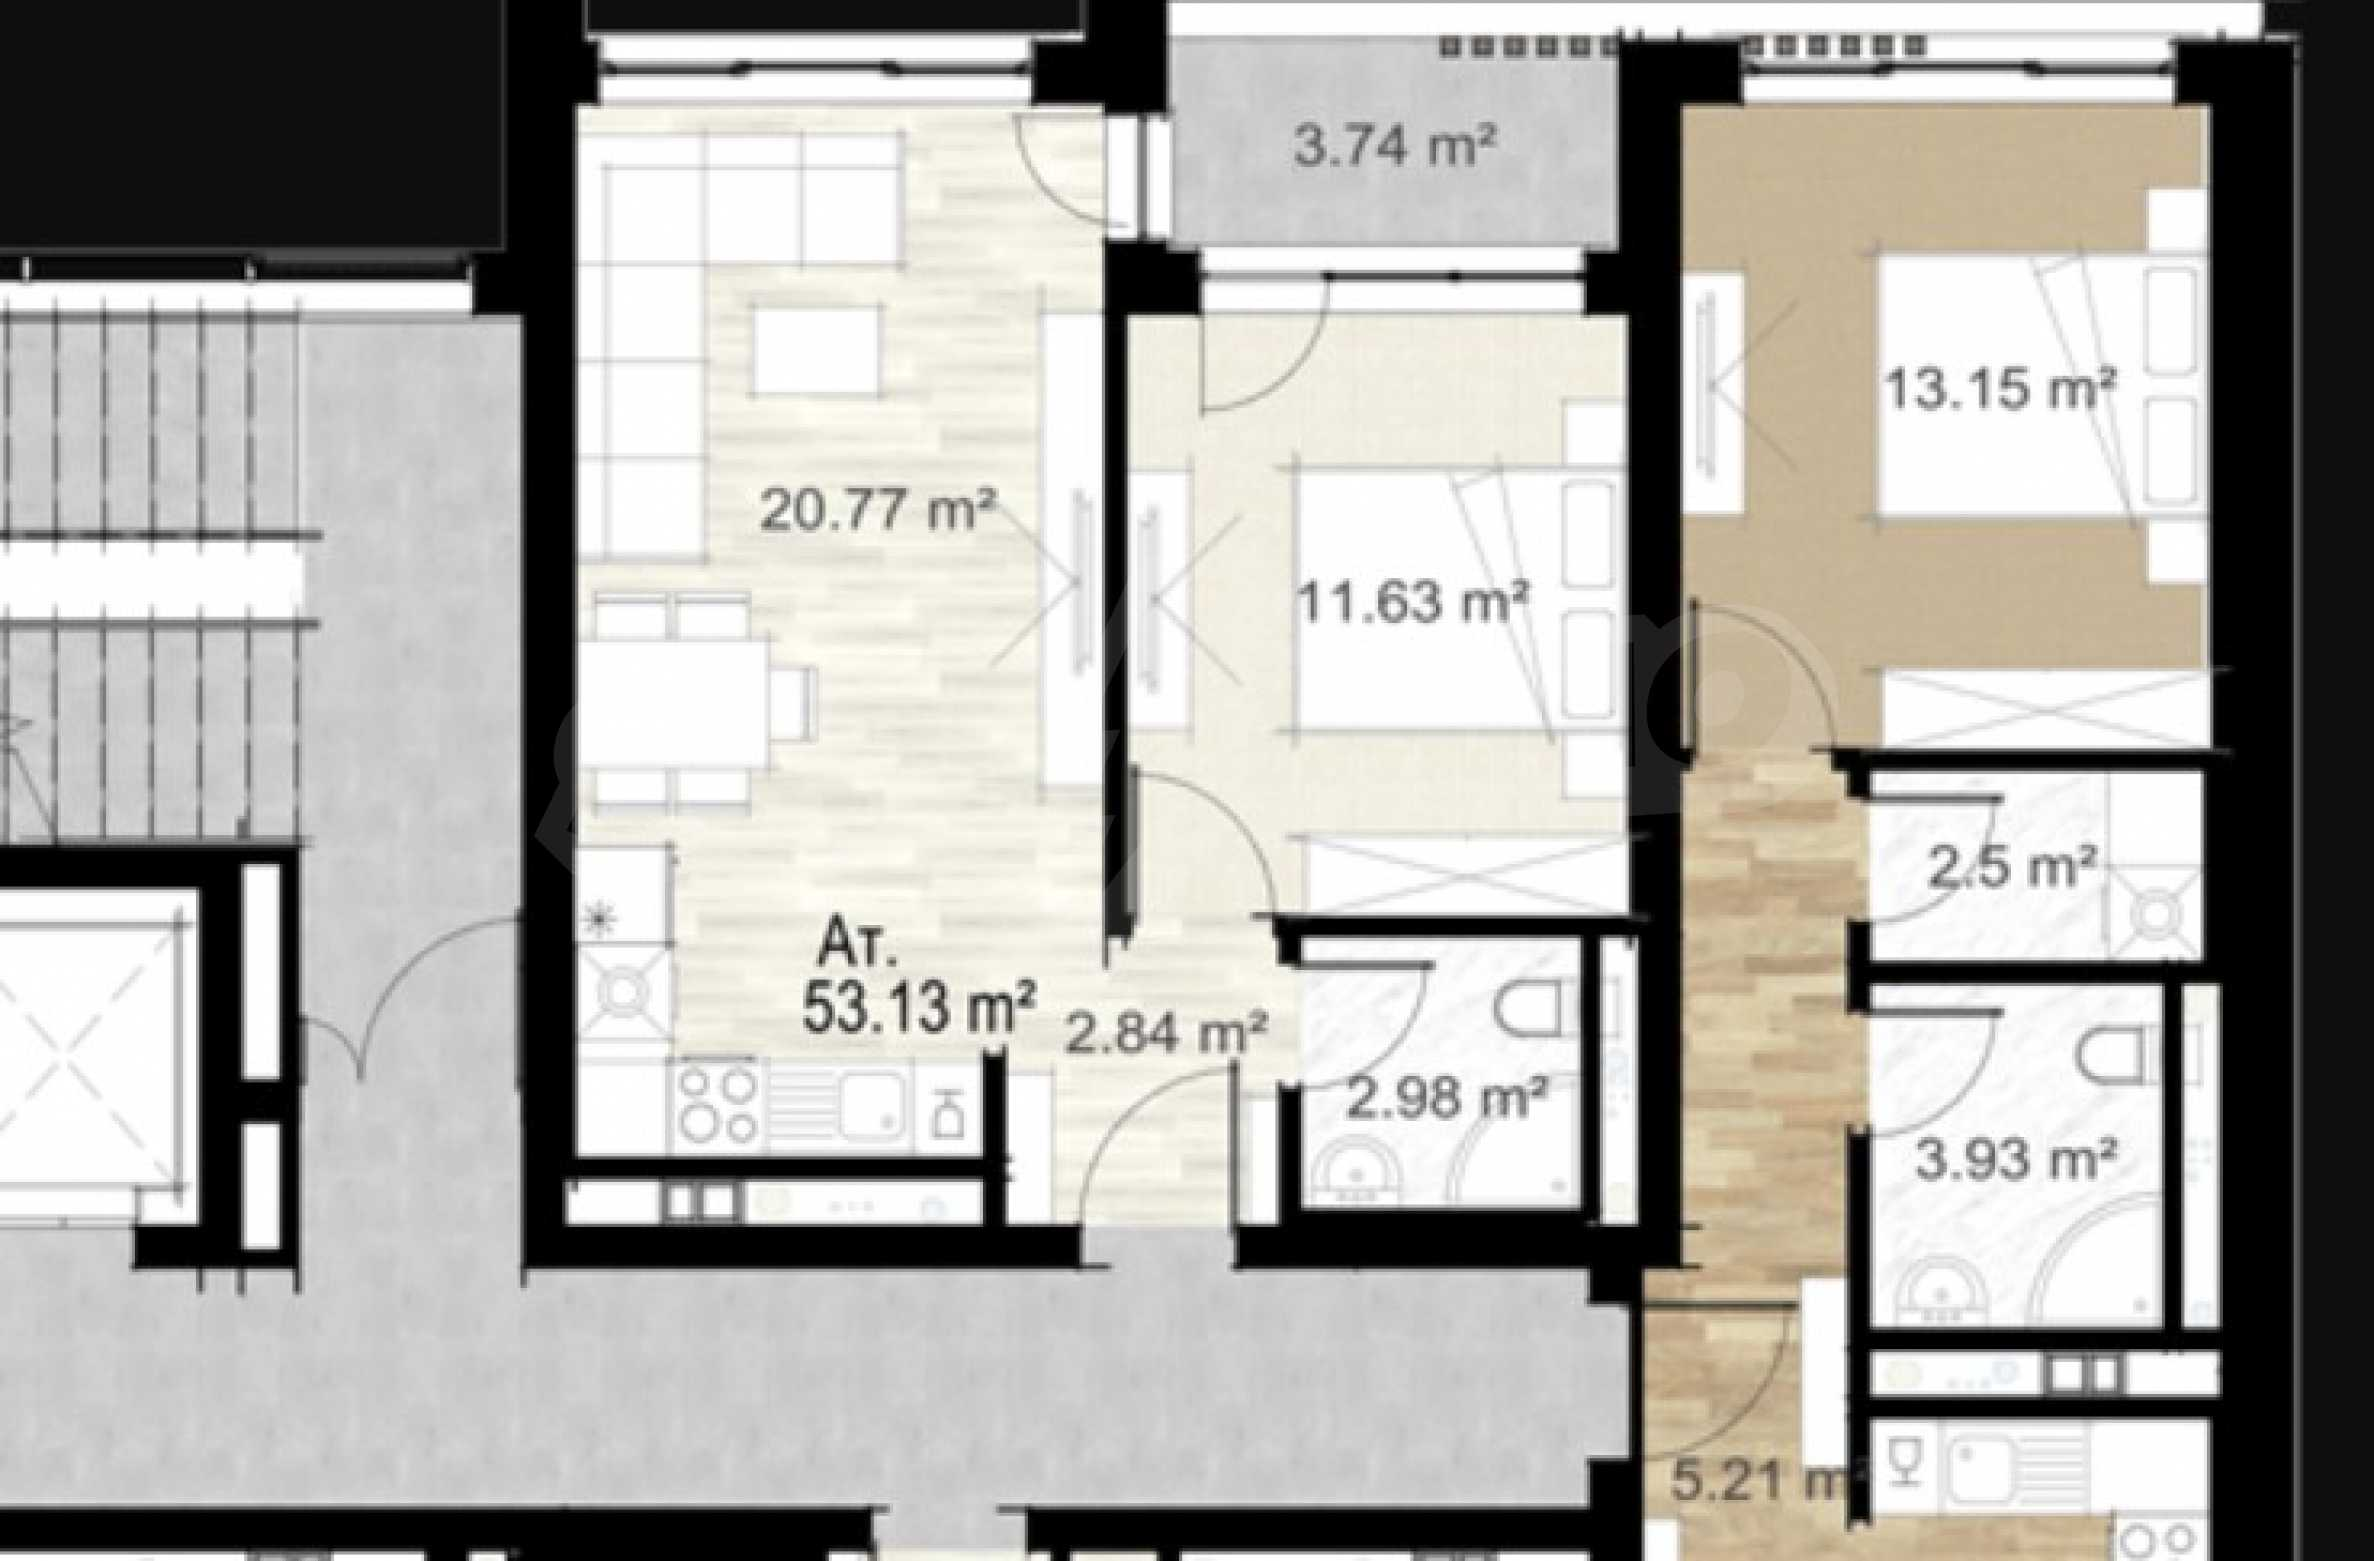 One bedroom apartment next to the park, Mall Sofia and metro station 1